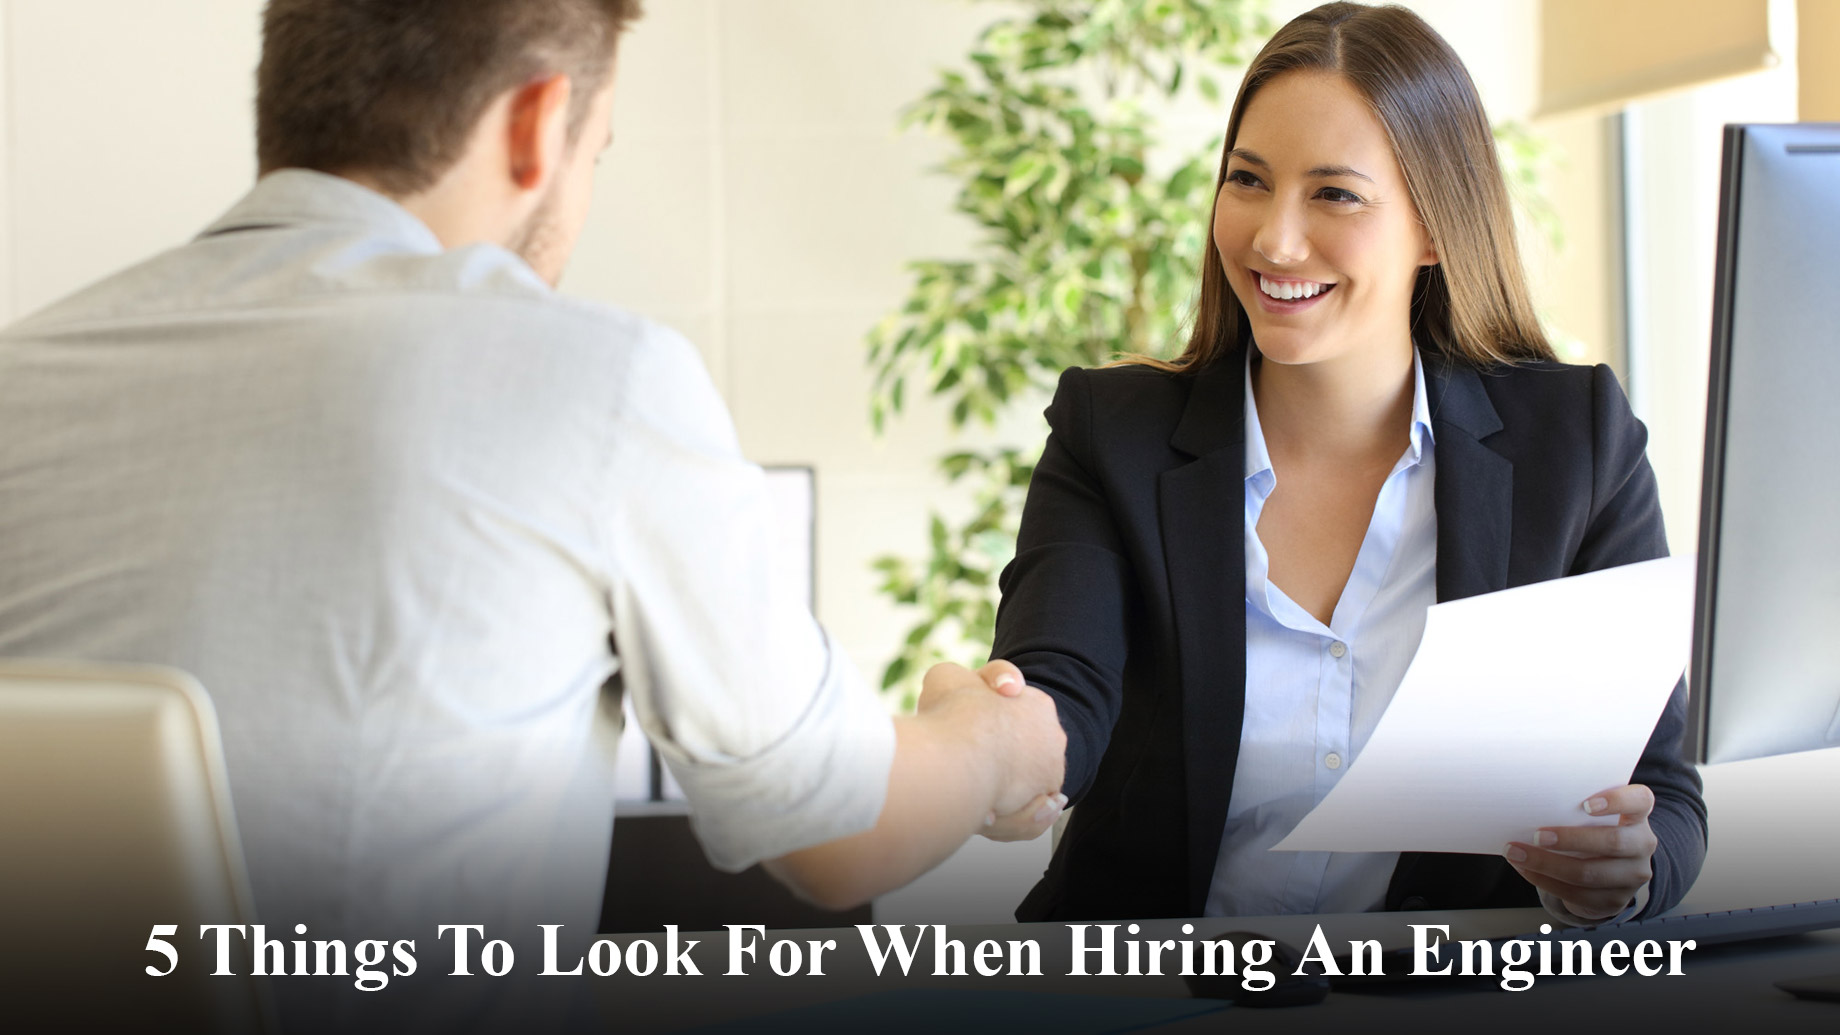 5 Things To Look For When Hiring An Engineer